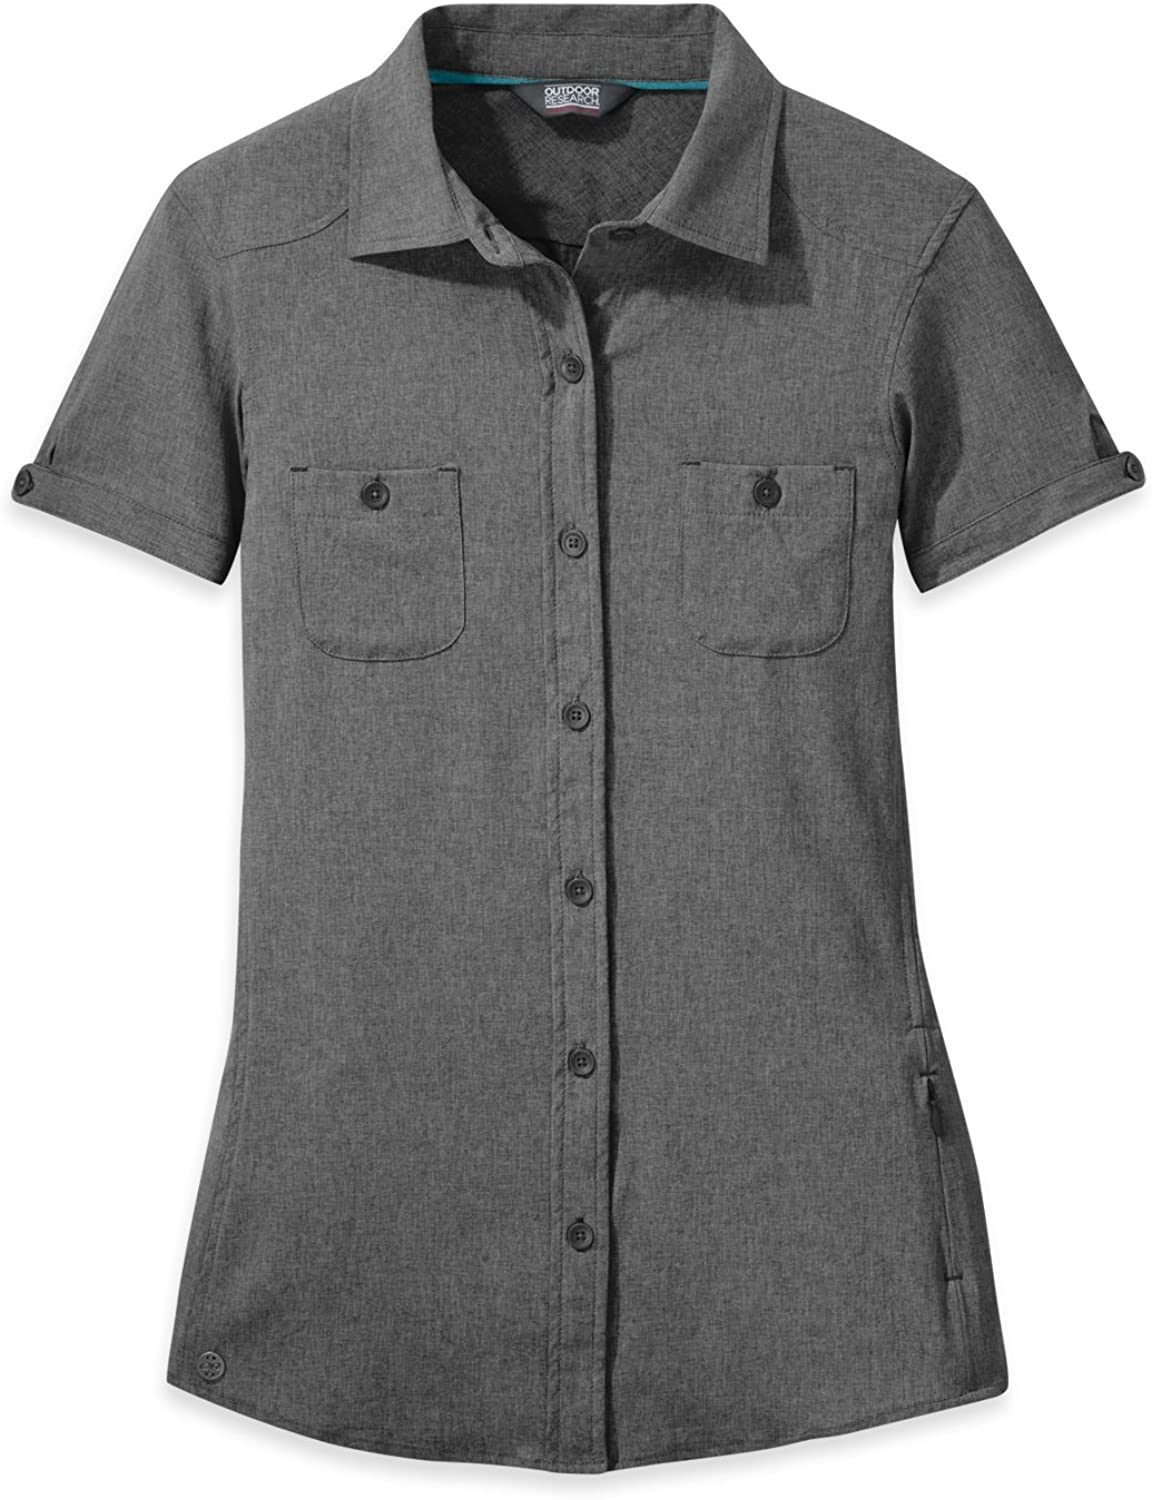 Outdoor Research Women's Reflection S/S Shirt